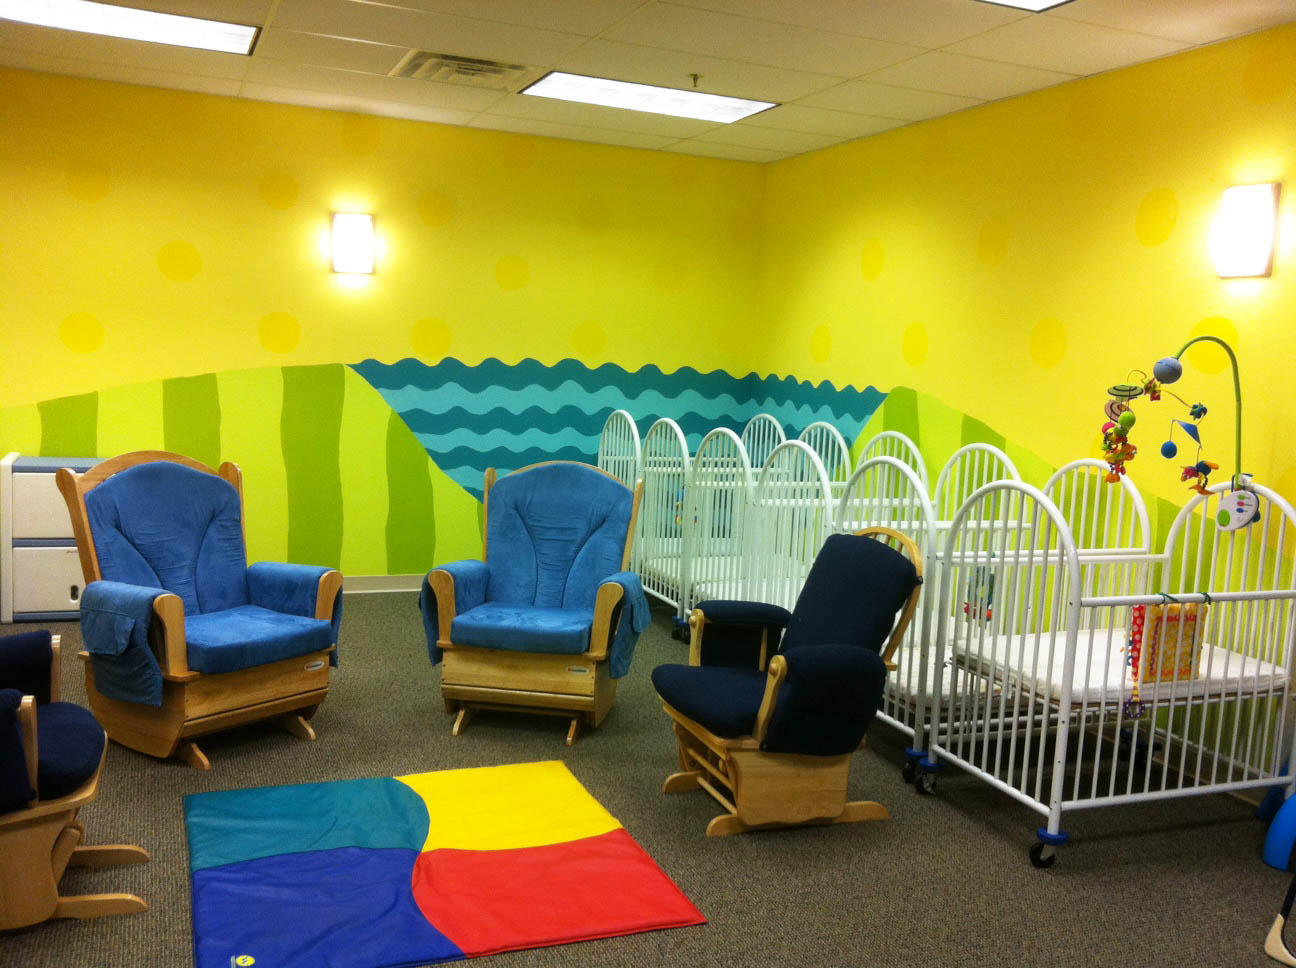 If I Were Painting A Nursery In My Own Home Would Pick Such Bright Colors Probably Not However This Is Busy Church Preschool Area